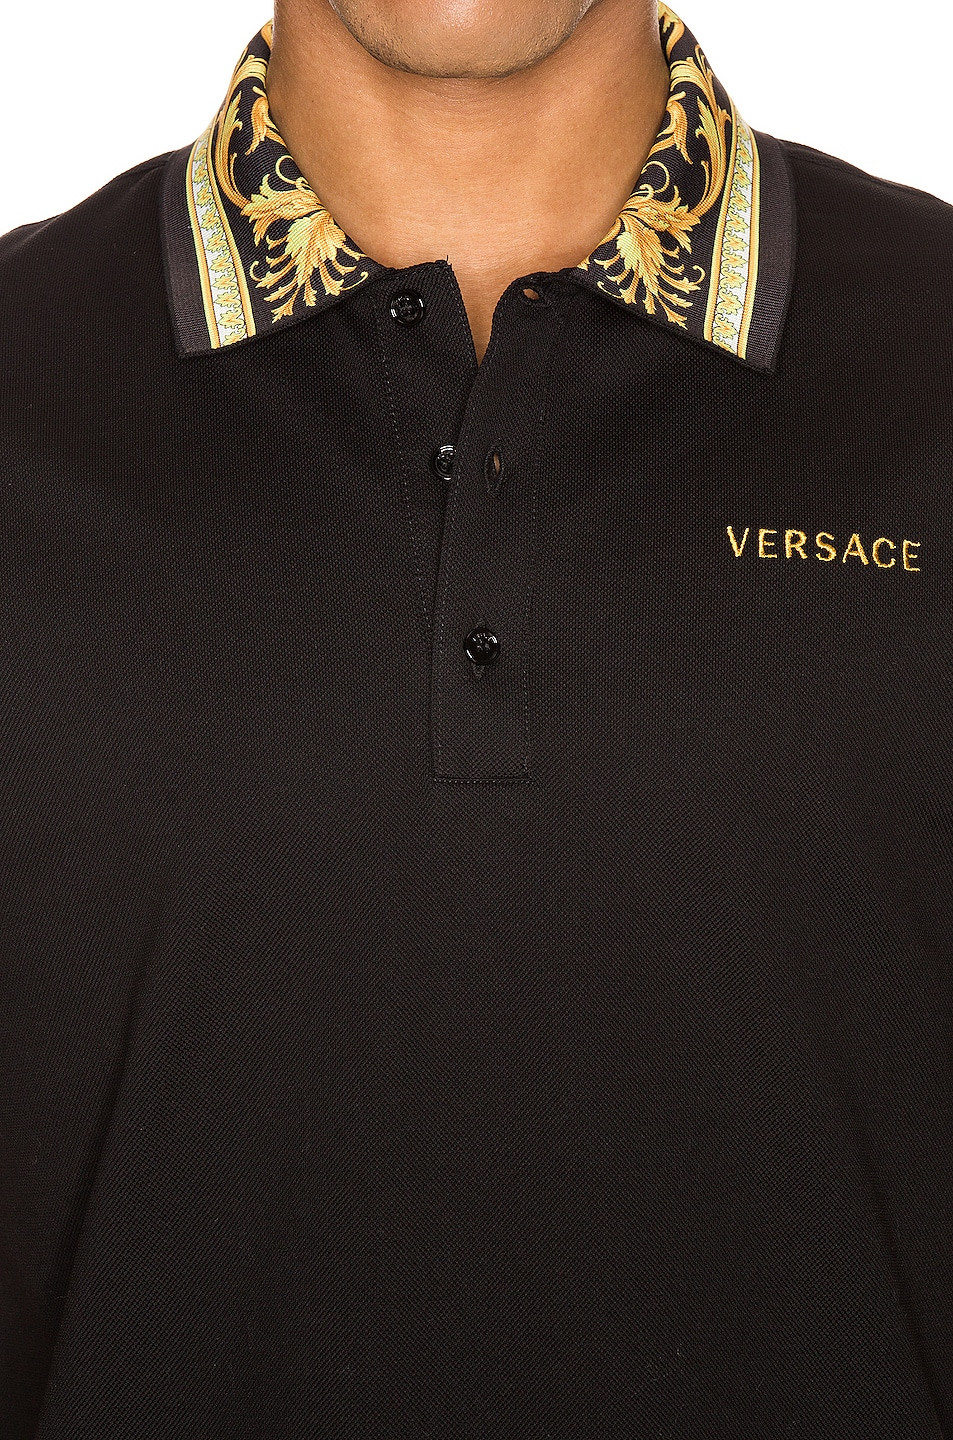 Image 5 of VERSACE Polo in Black & Gold